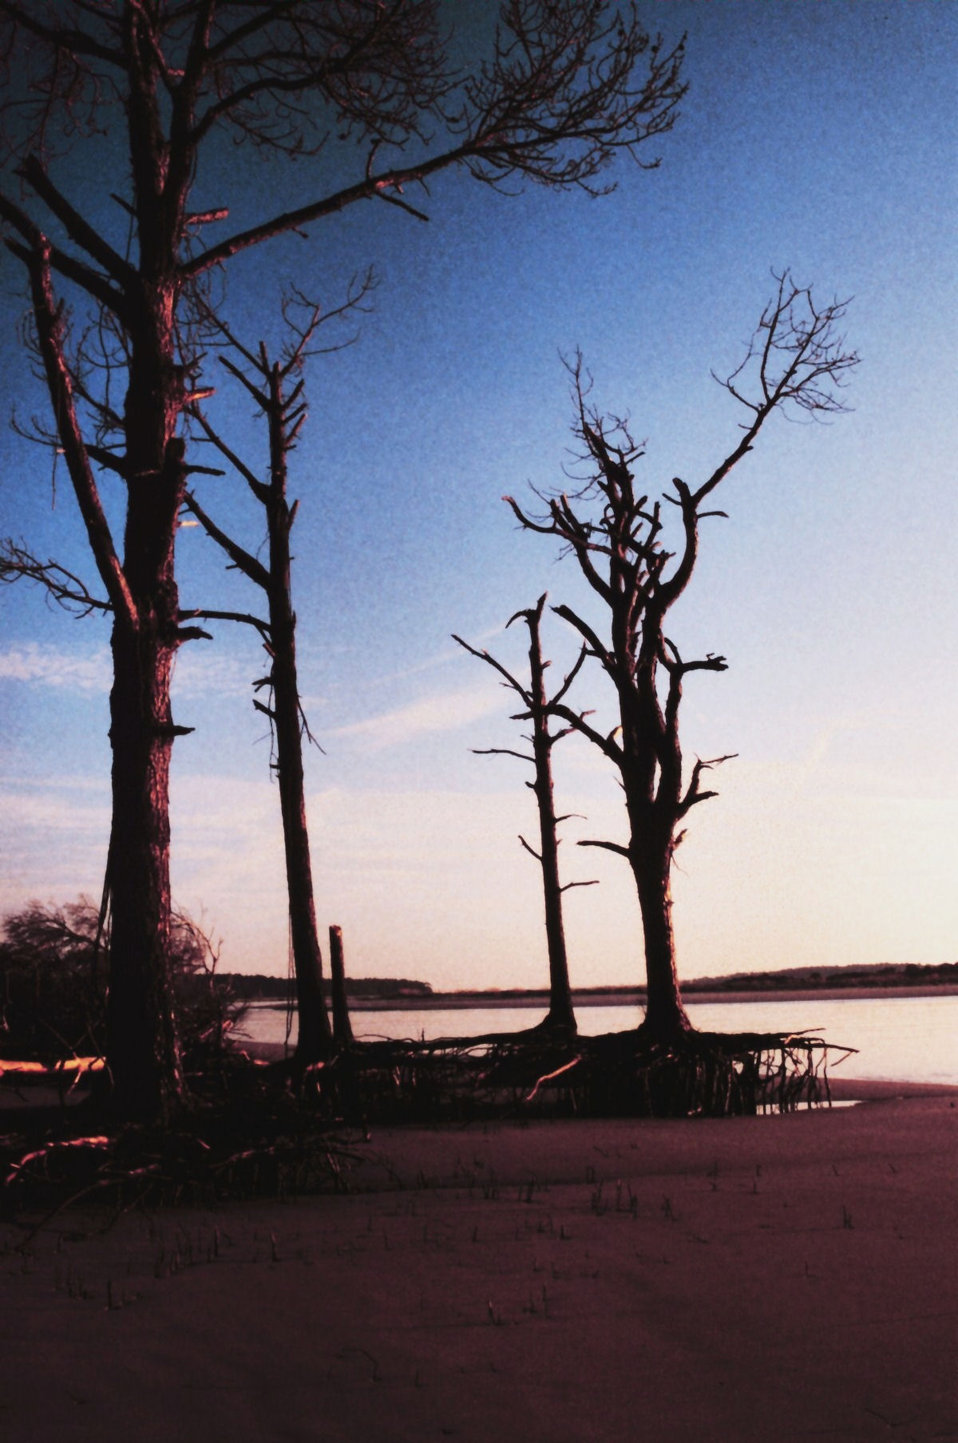 Tree roots exposed because of erosion on the north end of Sapelo's beach. Typical of barrier islands, sand from the north end of Sapelo and Blackbeard is eroded away by ocean currents and deposited at the south end where sand dunes continue to build.  T